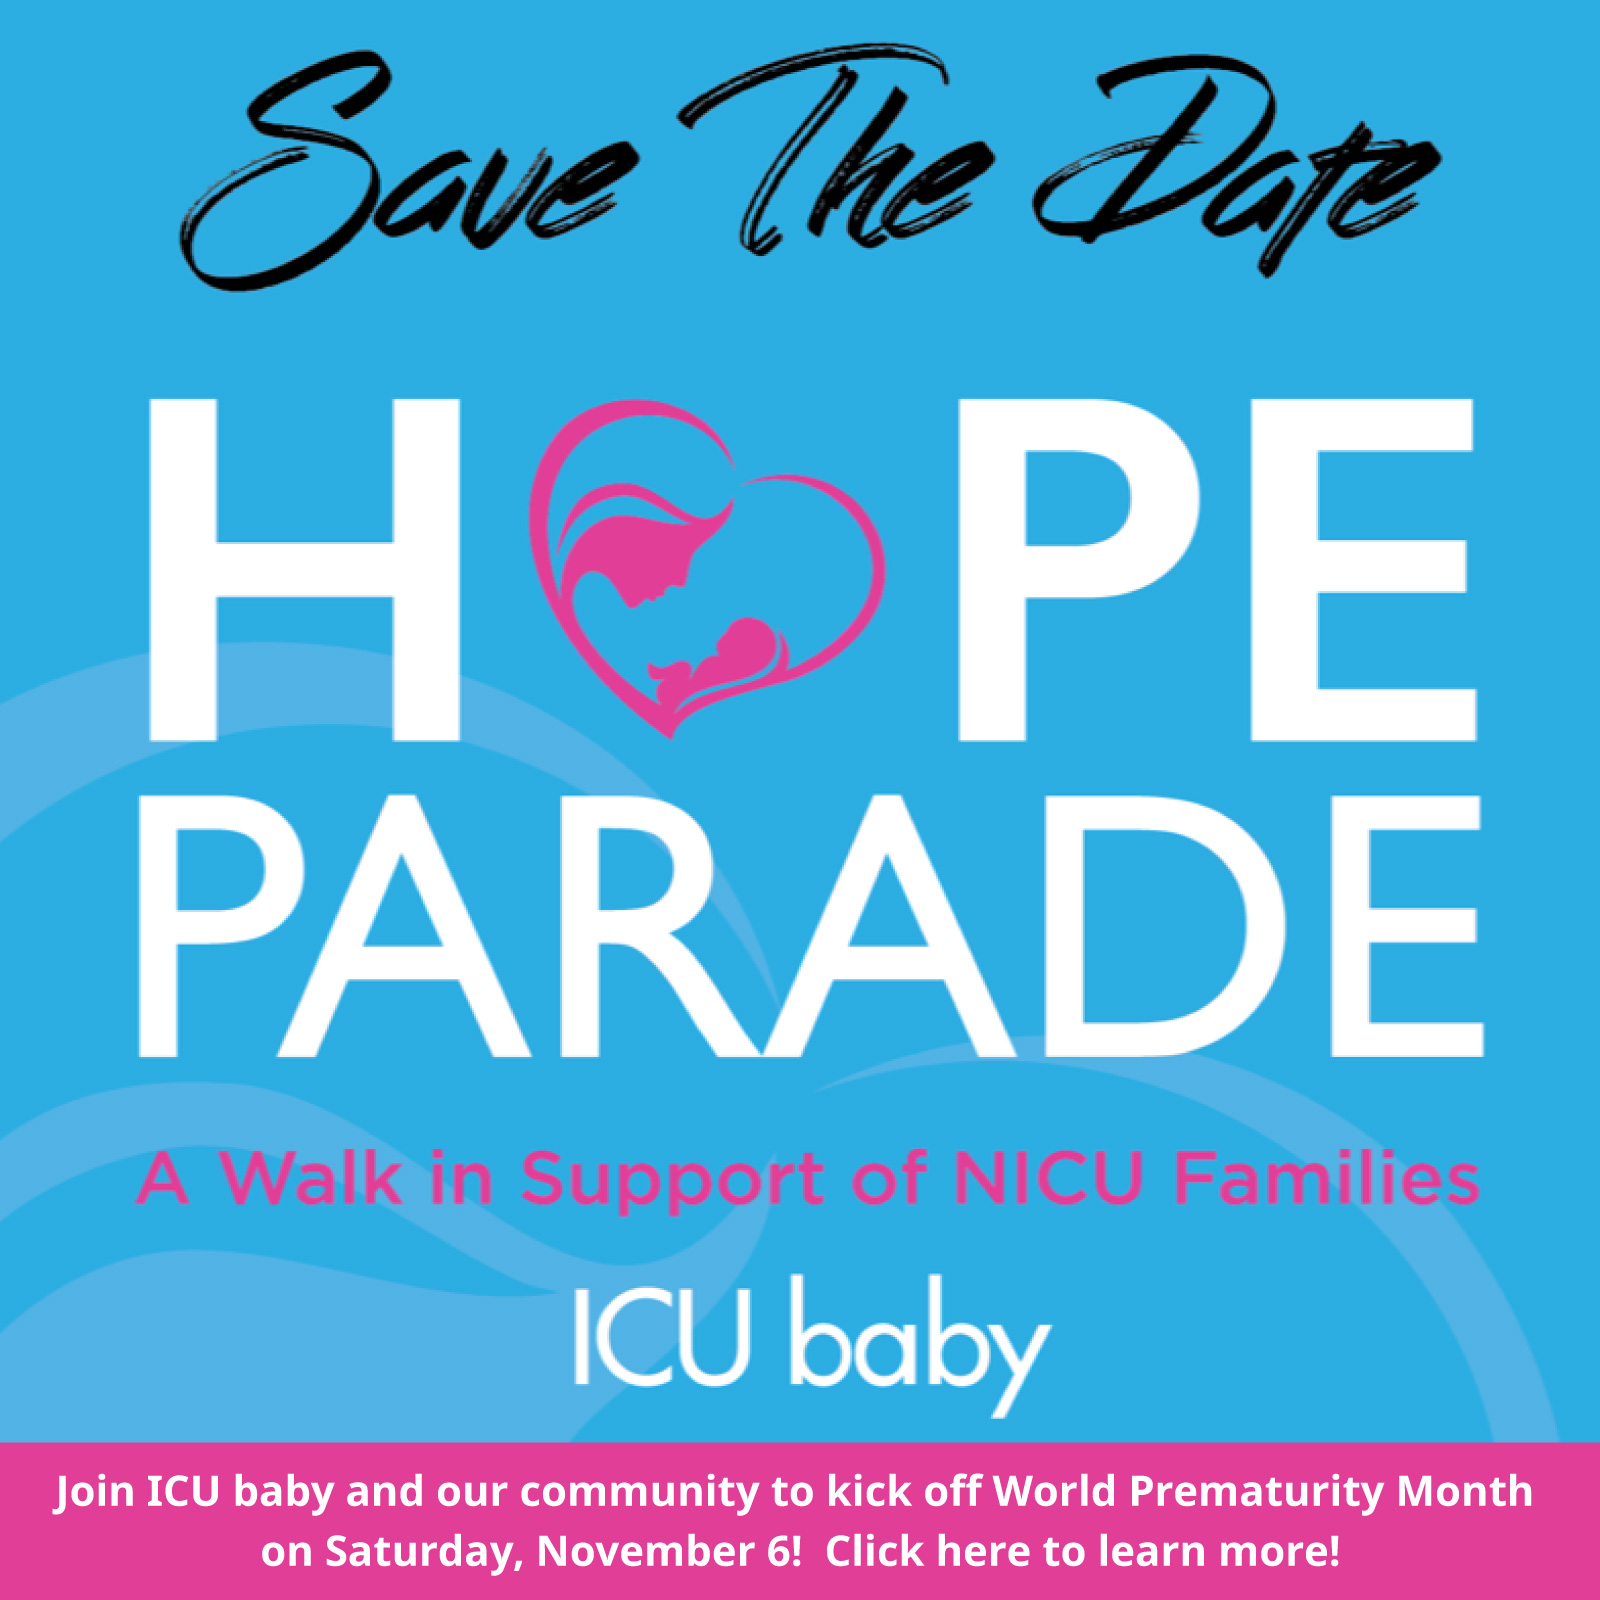 Save the Date   Join ICU baby and our community to kick off World Prematurity Month  on Saturday, November 6!  Click here to learn more!